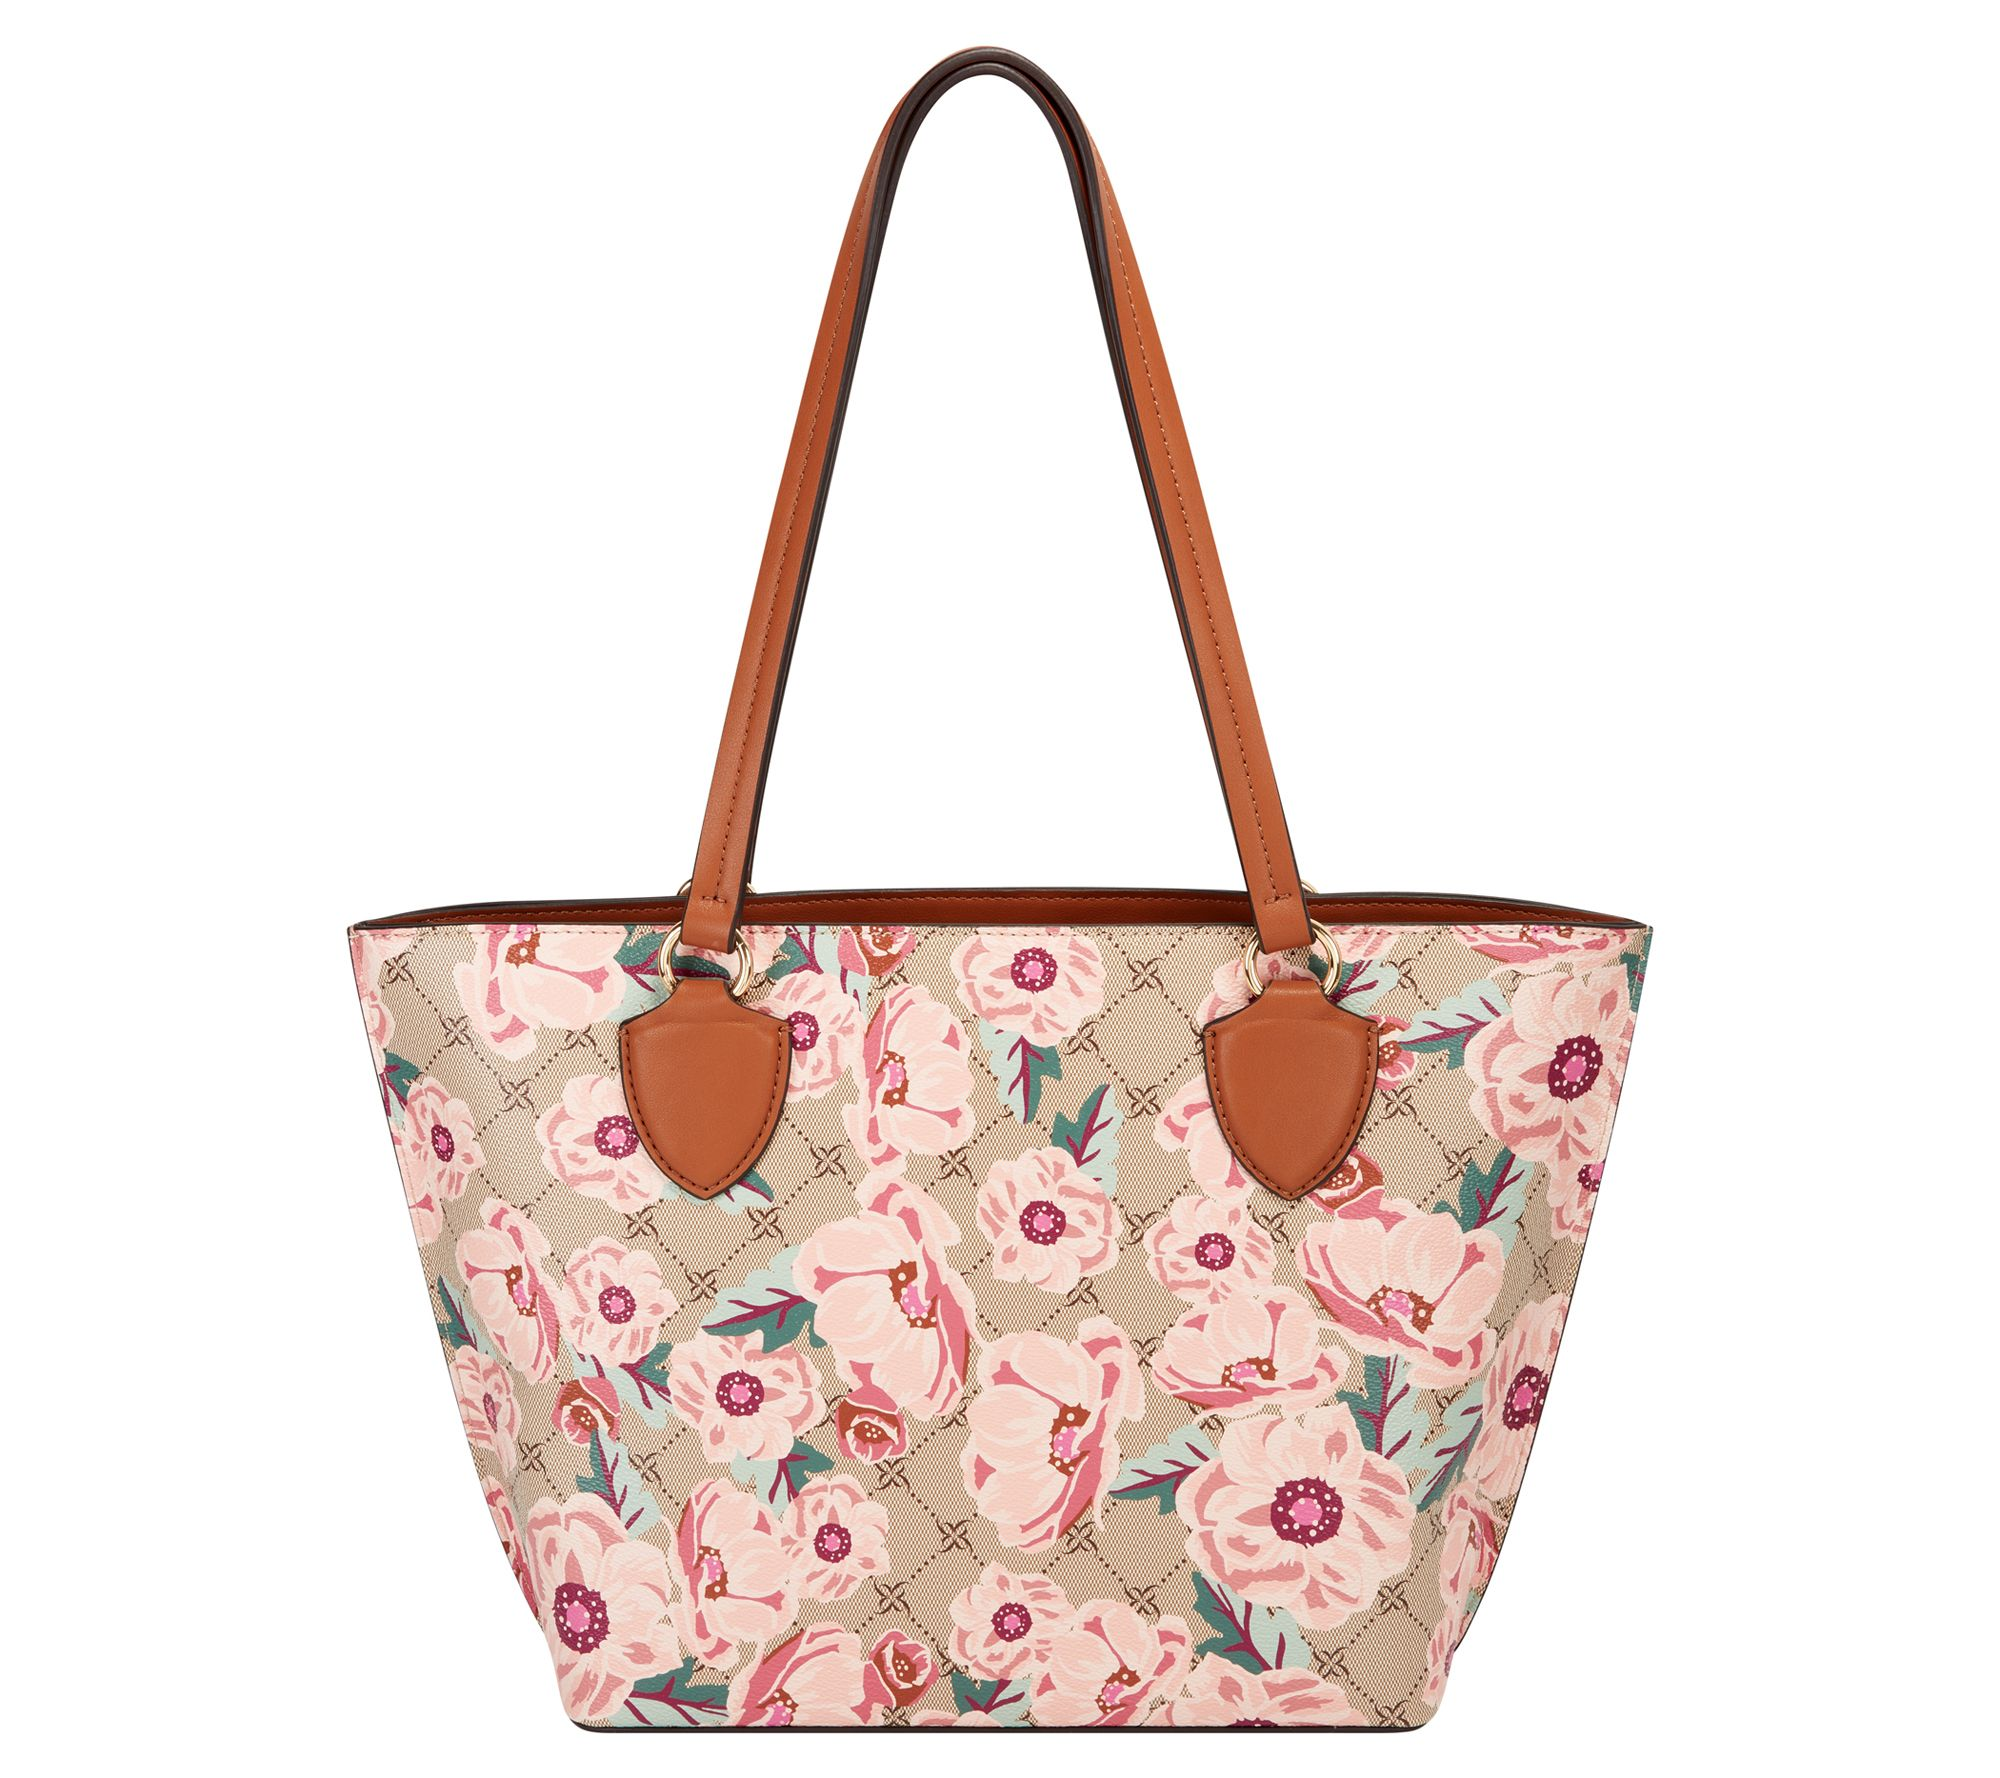 Mr.Weng Household Beautiful Flowers Lady Handbag Tote Bag Zipper Shoulder Bag